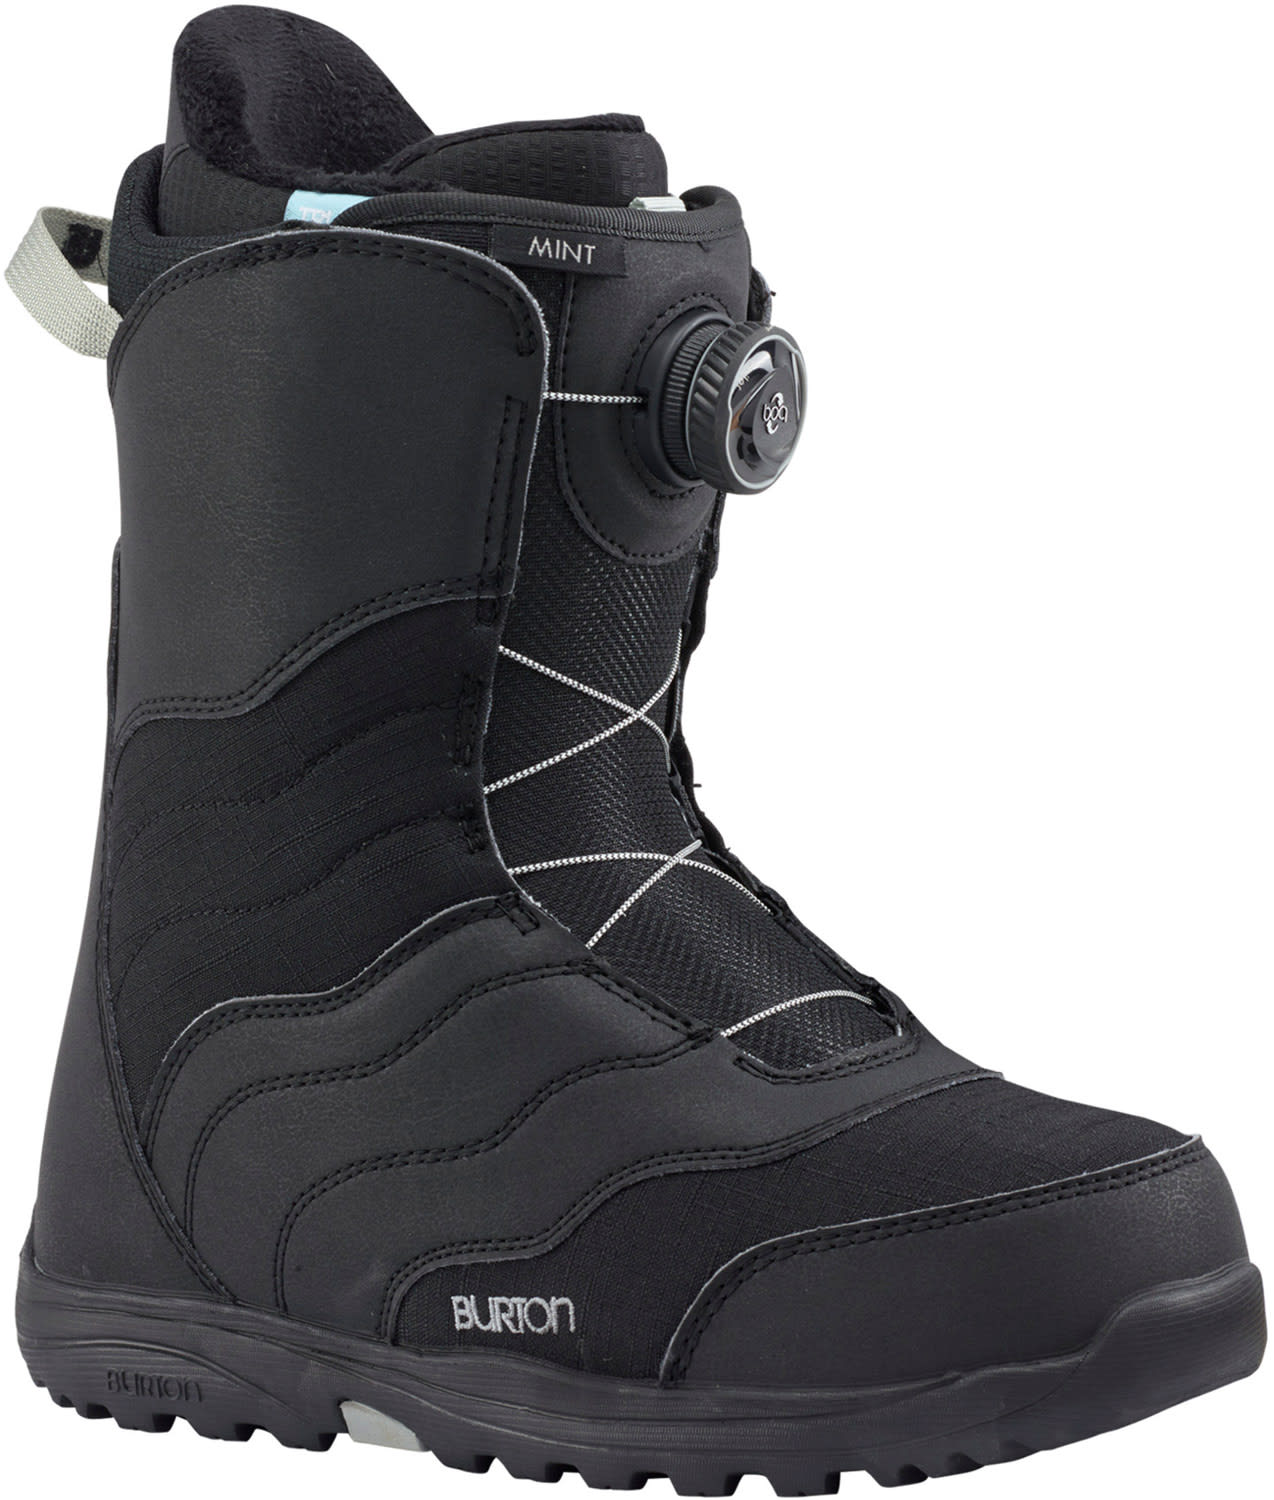 burton mint boa snowboard boots womens 2018. Black Bedroom Furniture Sets. Home Design Ideas